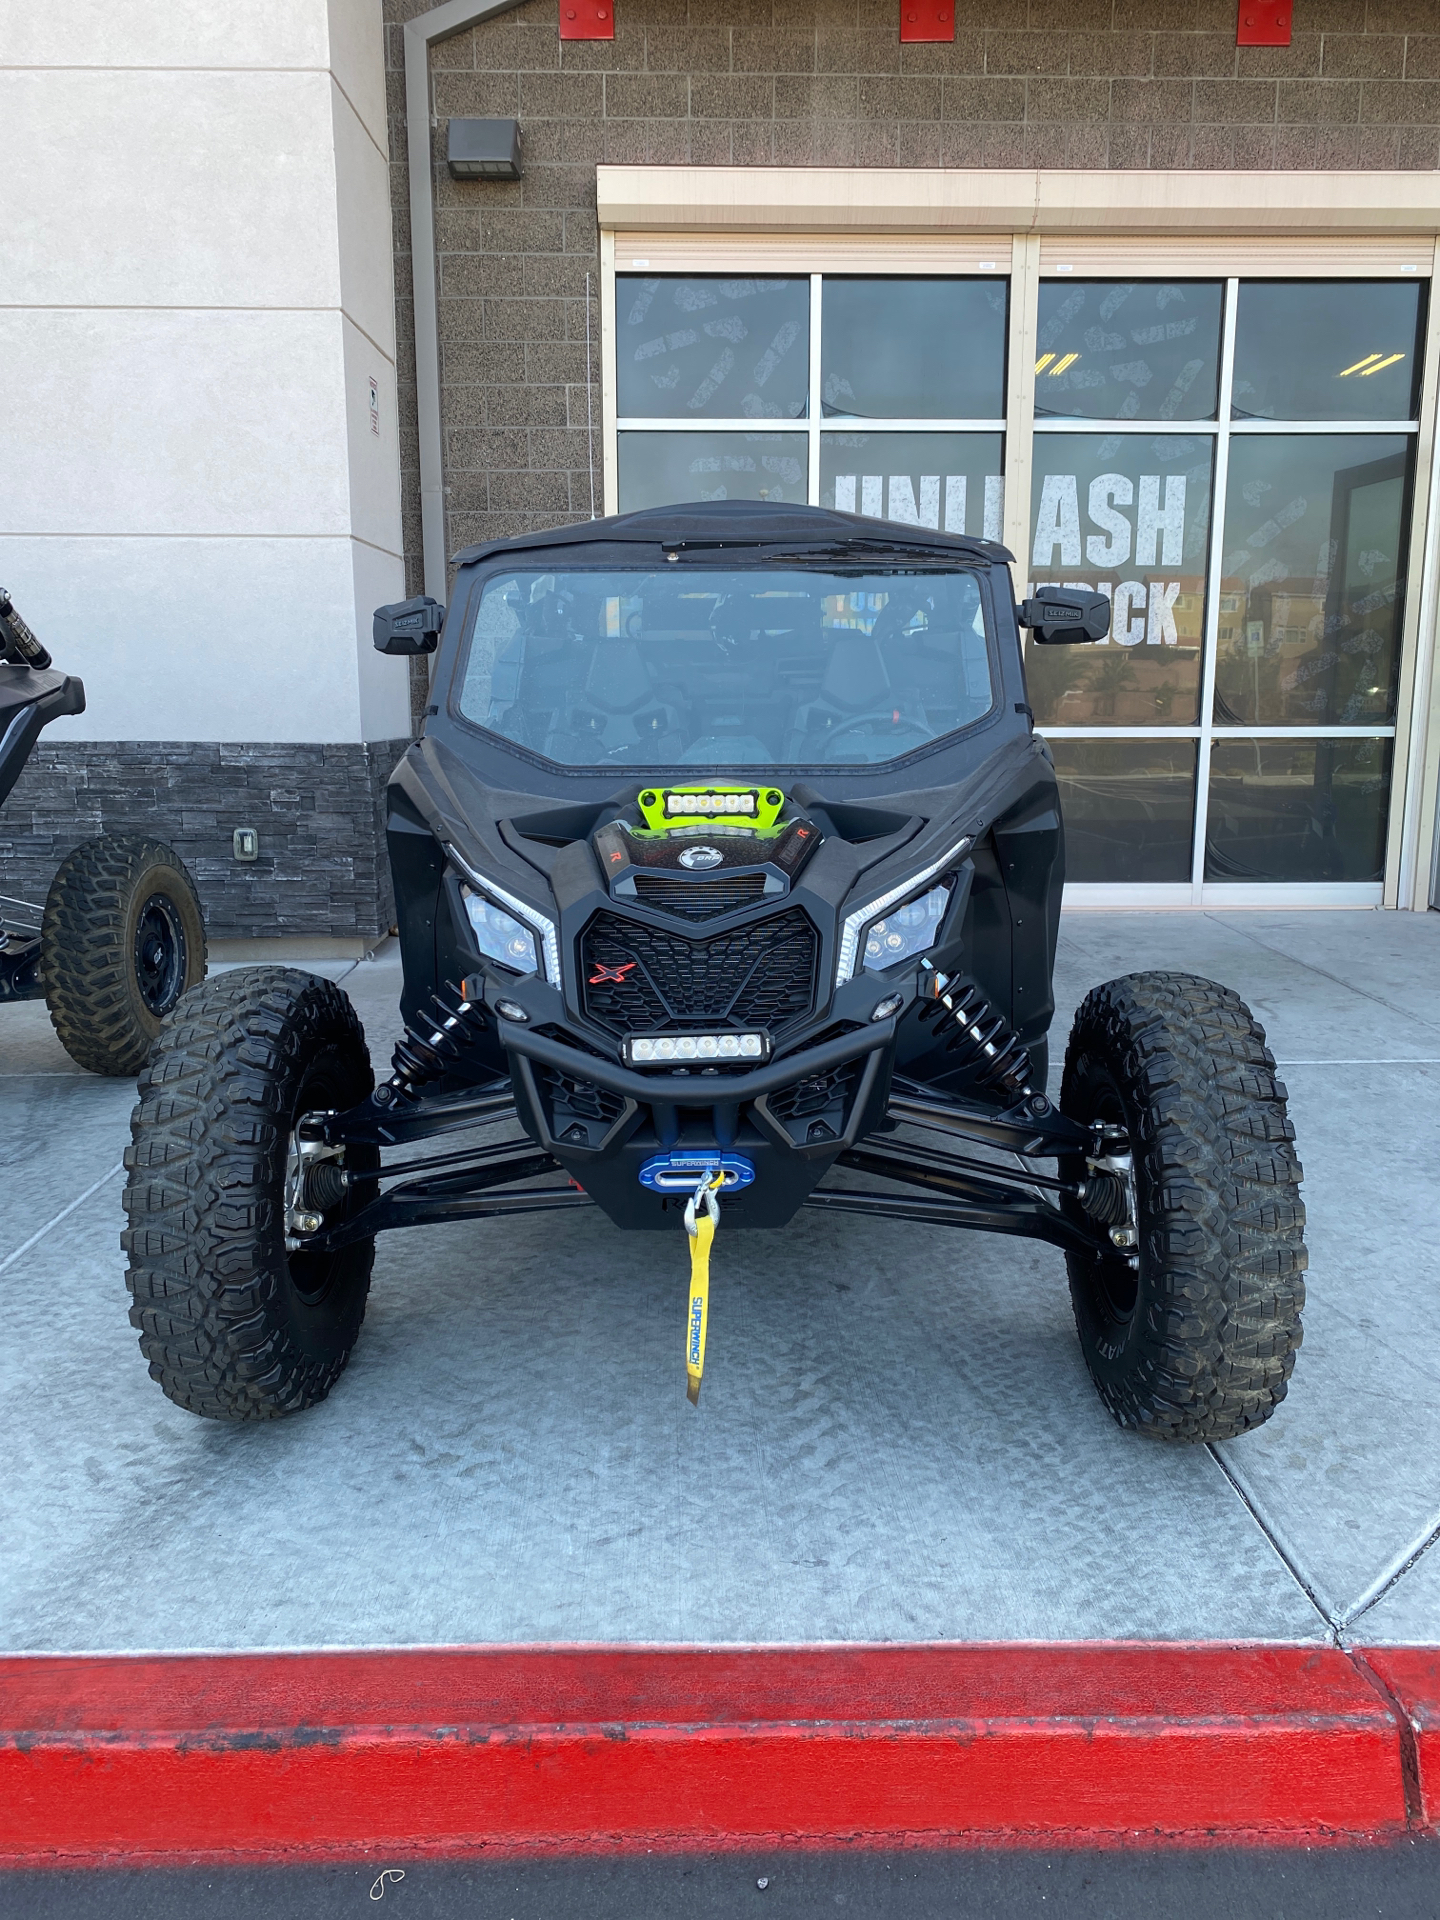 2017 Can-Am Maverick X3 X rs Turbo R in Las Vegas, Nevada - Photo 1